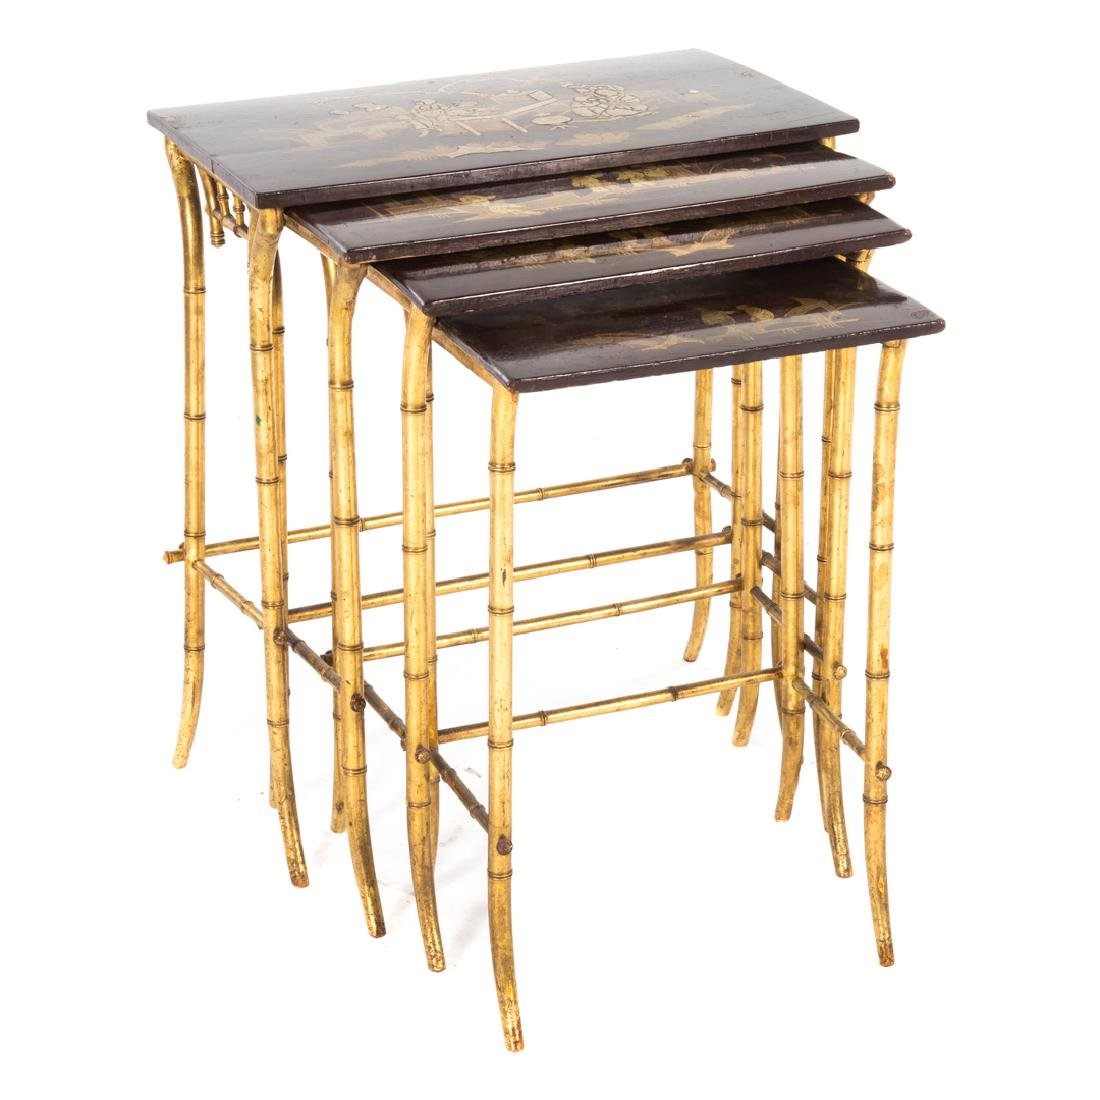 Chinese Export lacquer & gilt nesting tables,